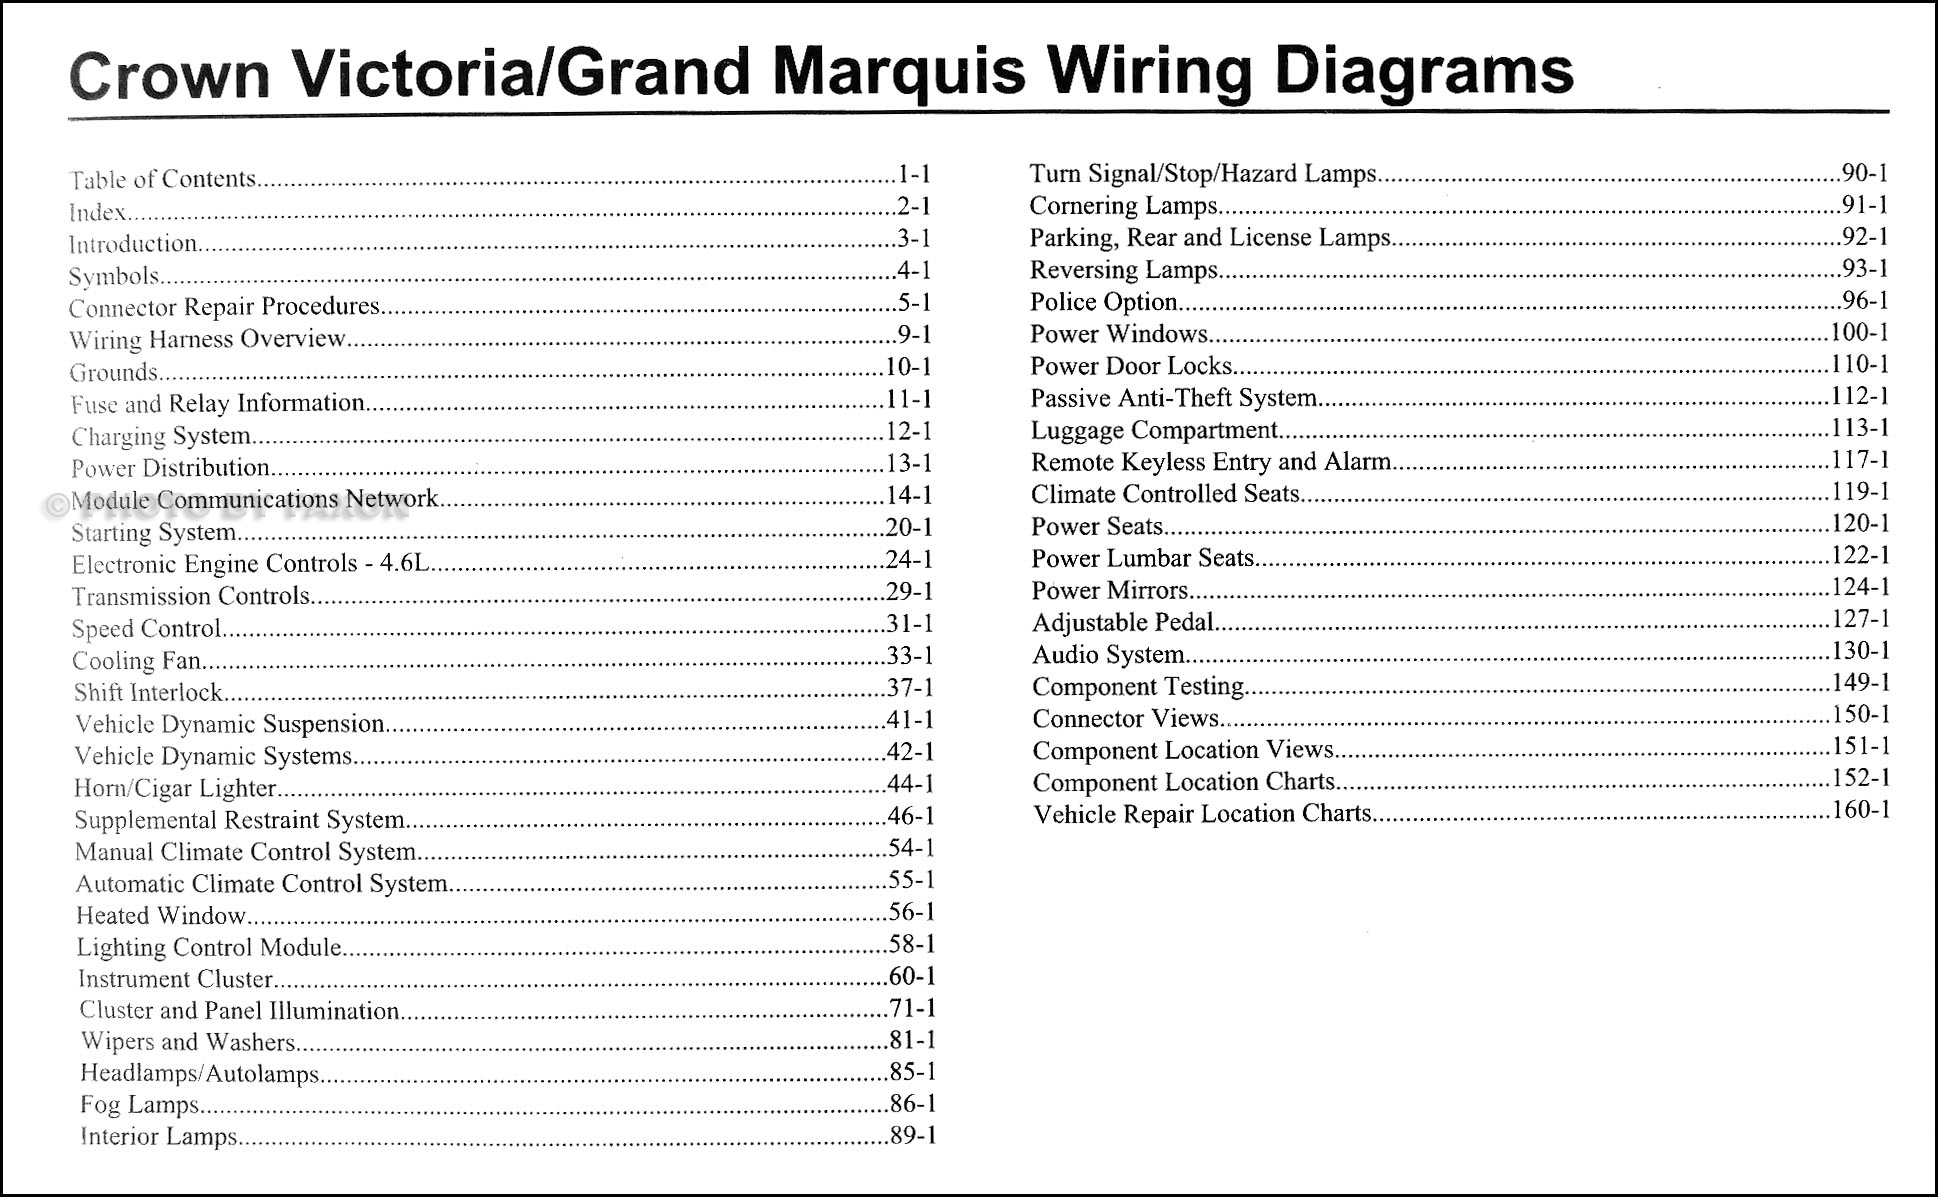 2009FordCrownVictoriaOWD TOC 2009 crown victoria & grand marquis original wiring diagram manual 2002 crown vic wiring diagram at bayanpartner.co